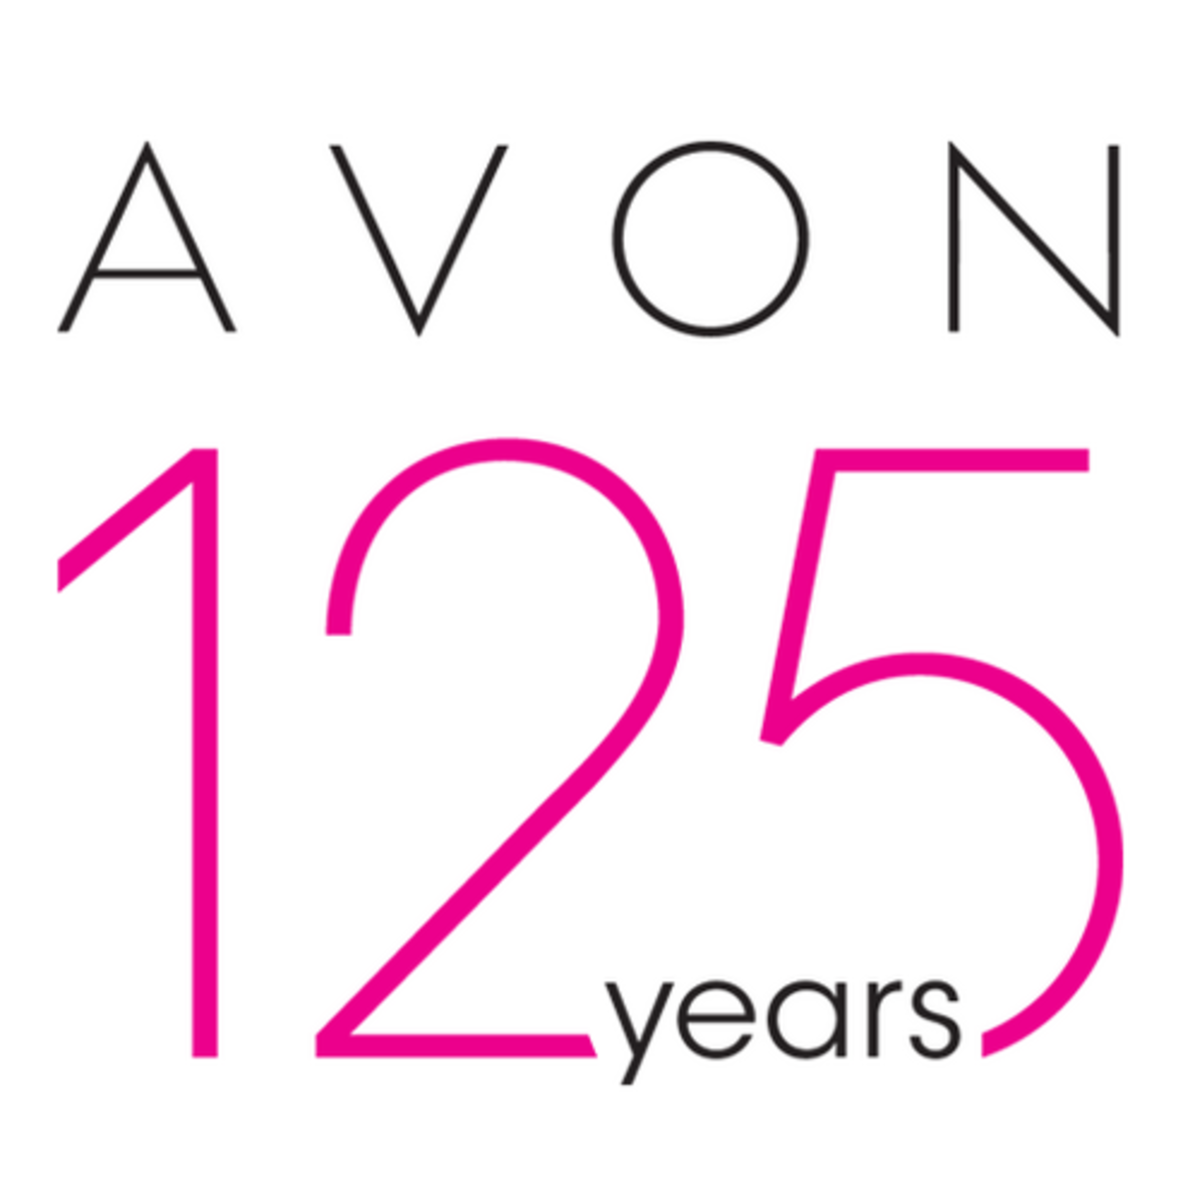 tips-for-new-avon-independent-sales-representatives